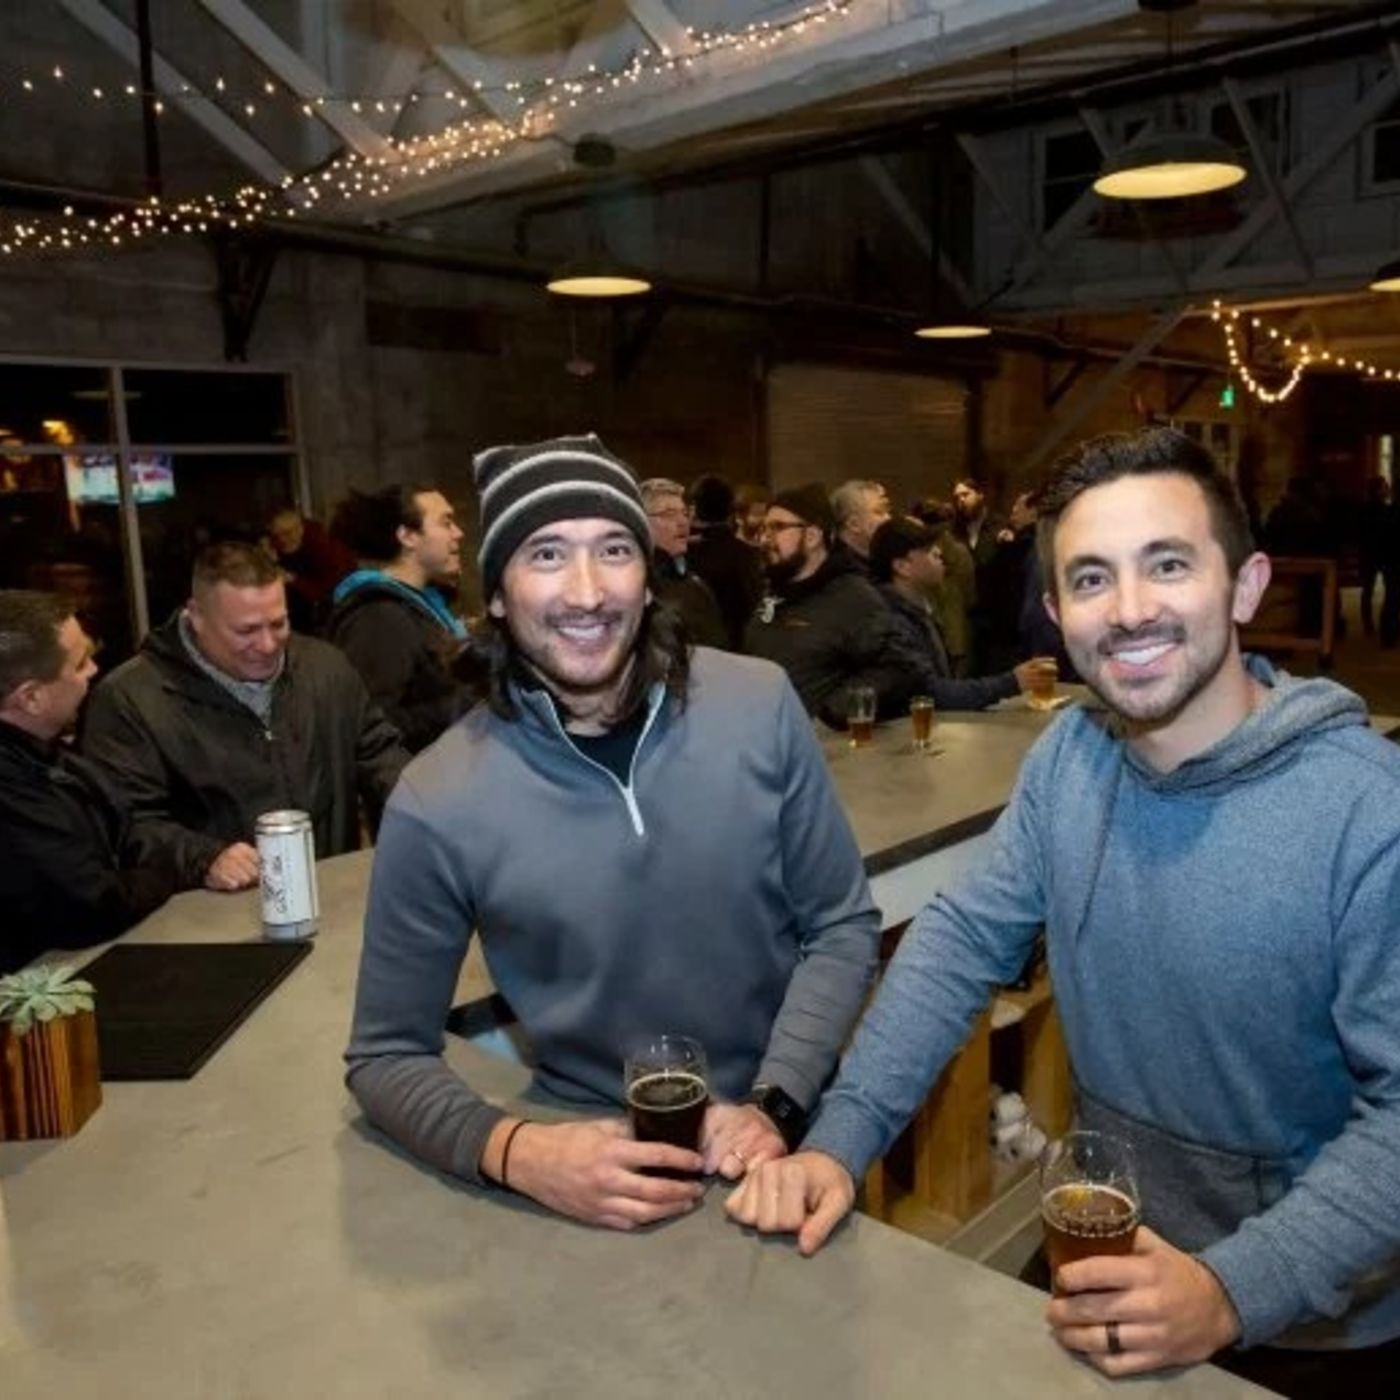 Local Boys Make Good - Hapa's Brewing Company